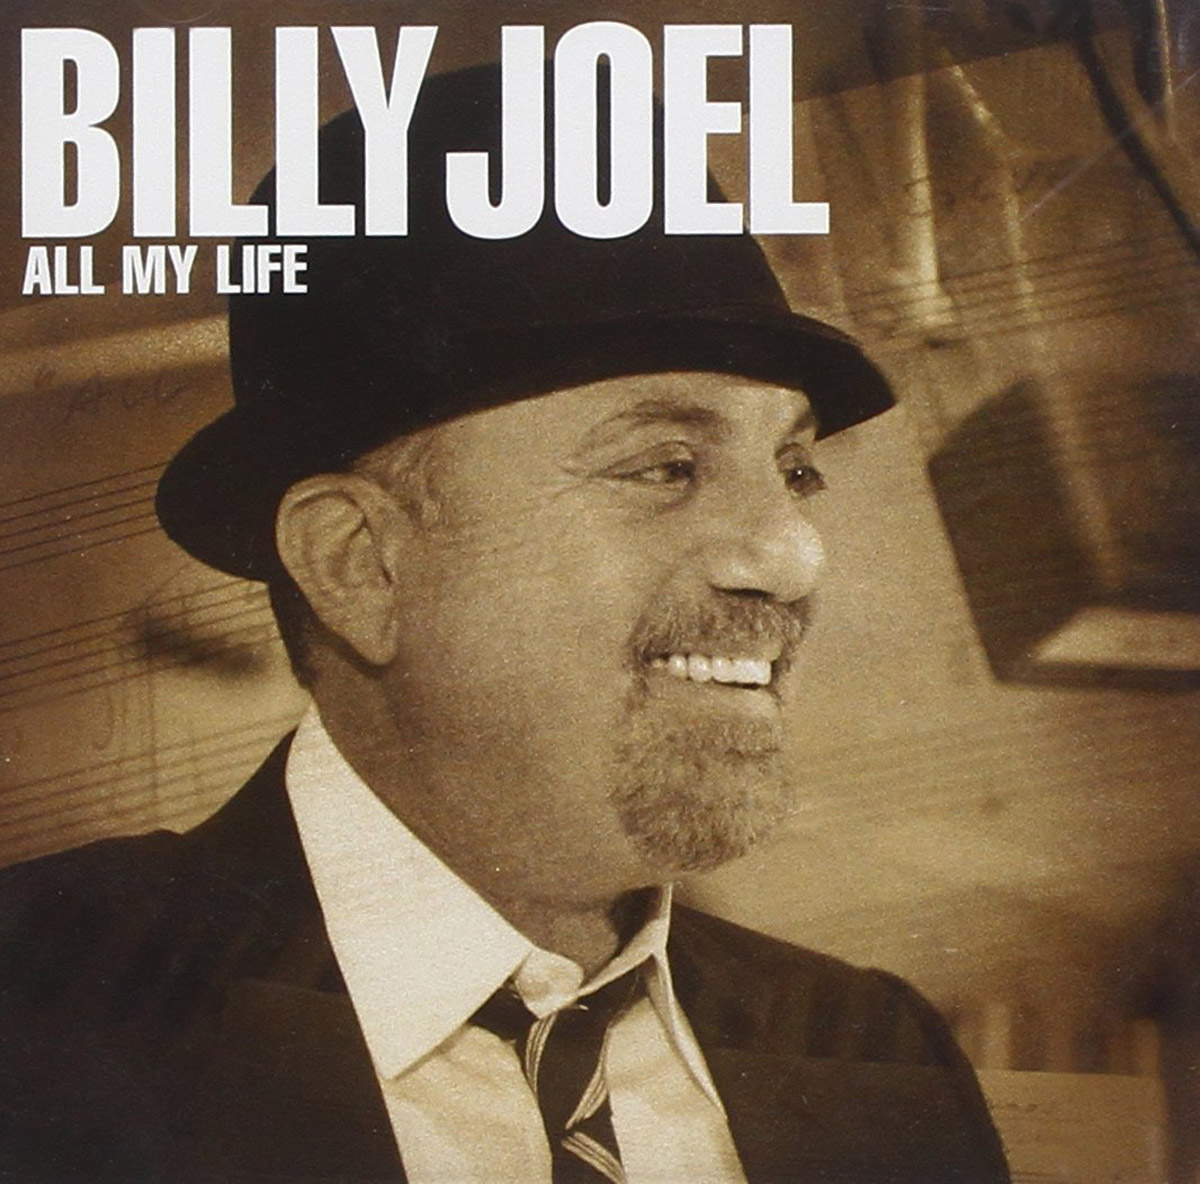 Billy Joel - All My Life (single)